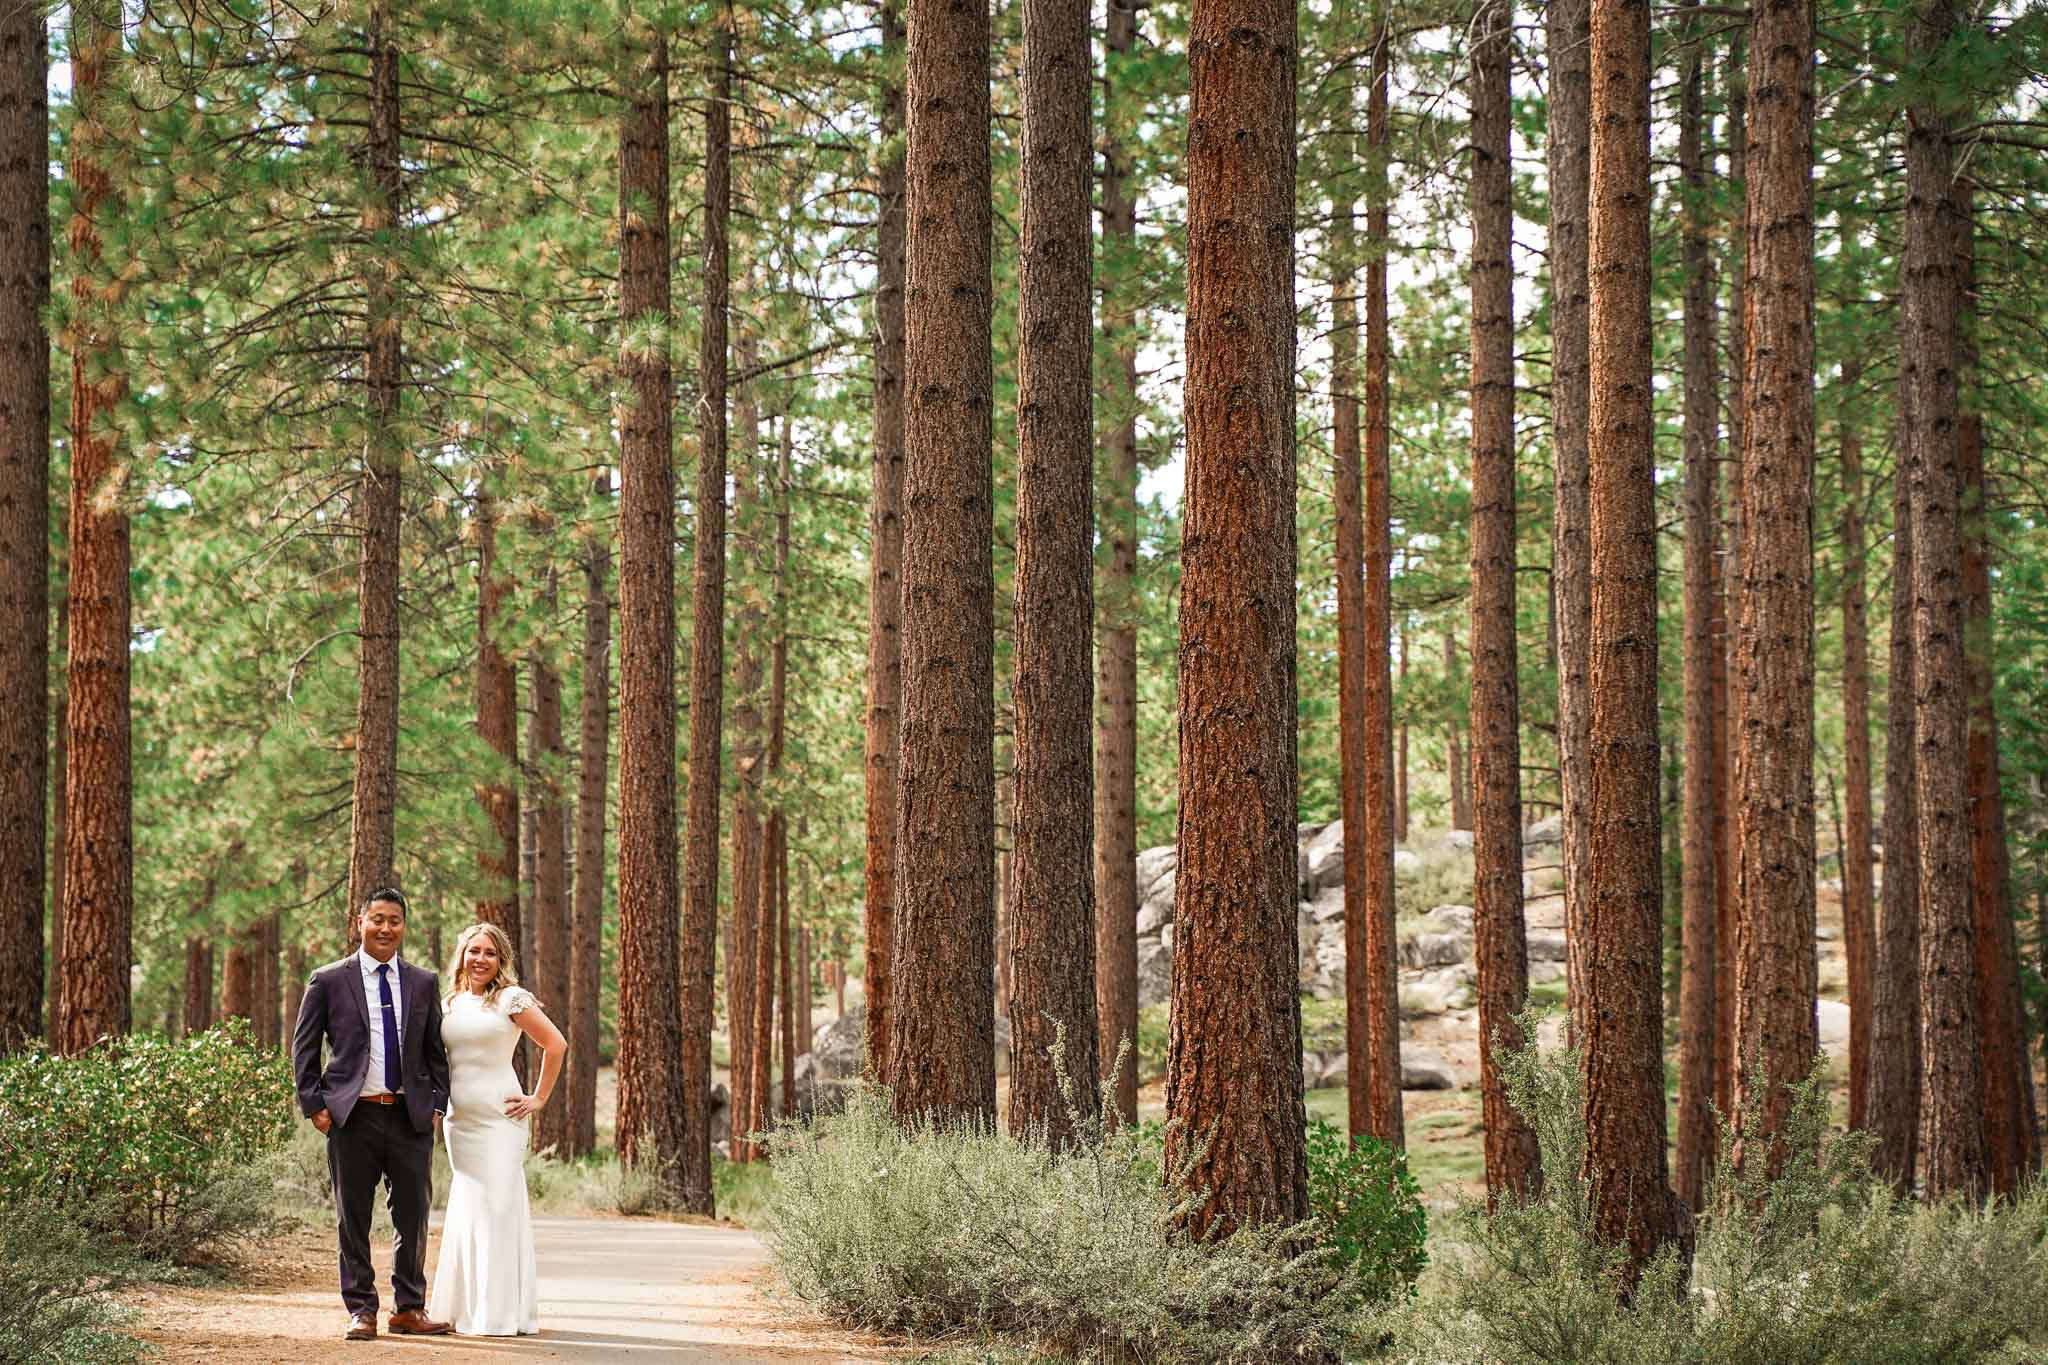 Bride and groom surrounded by pine trees in South Lake Tahoe